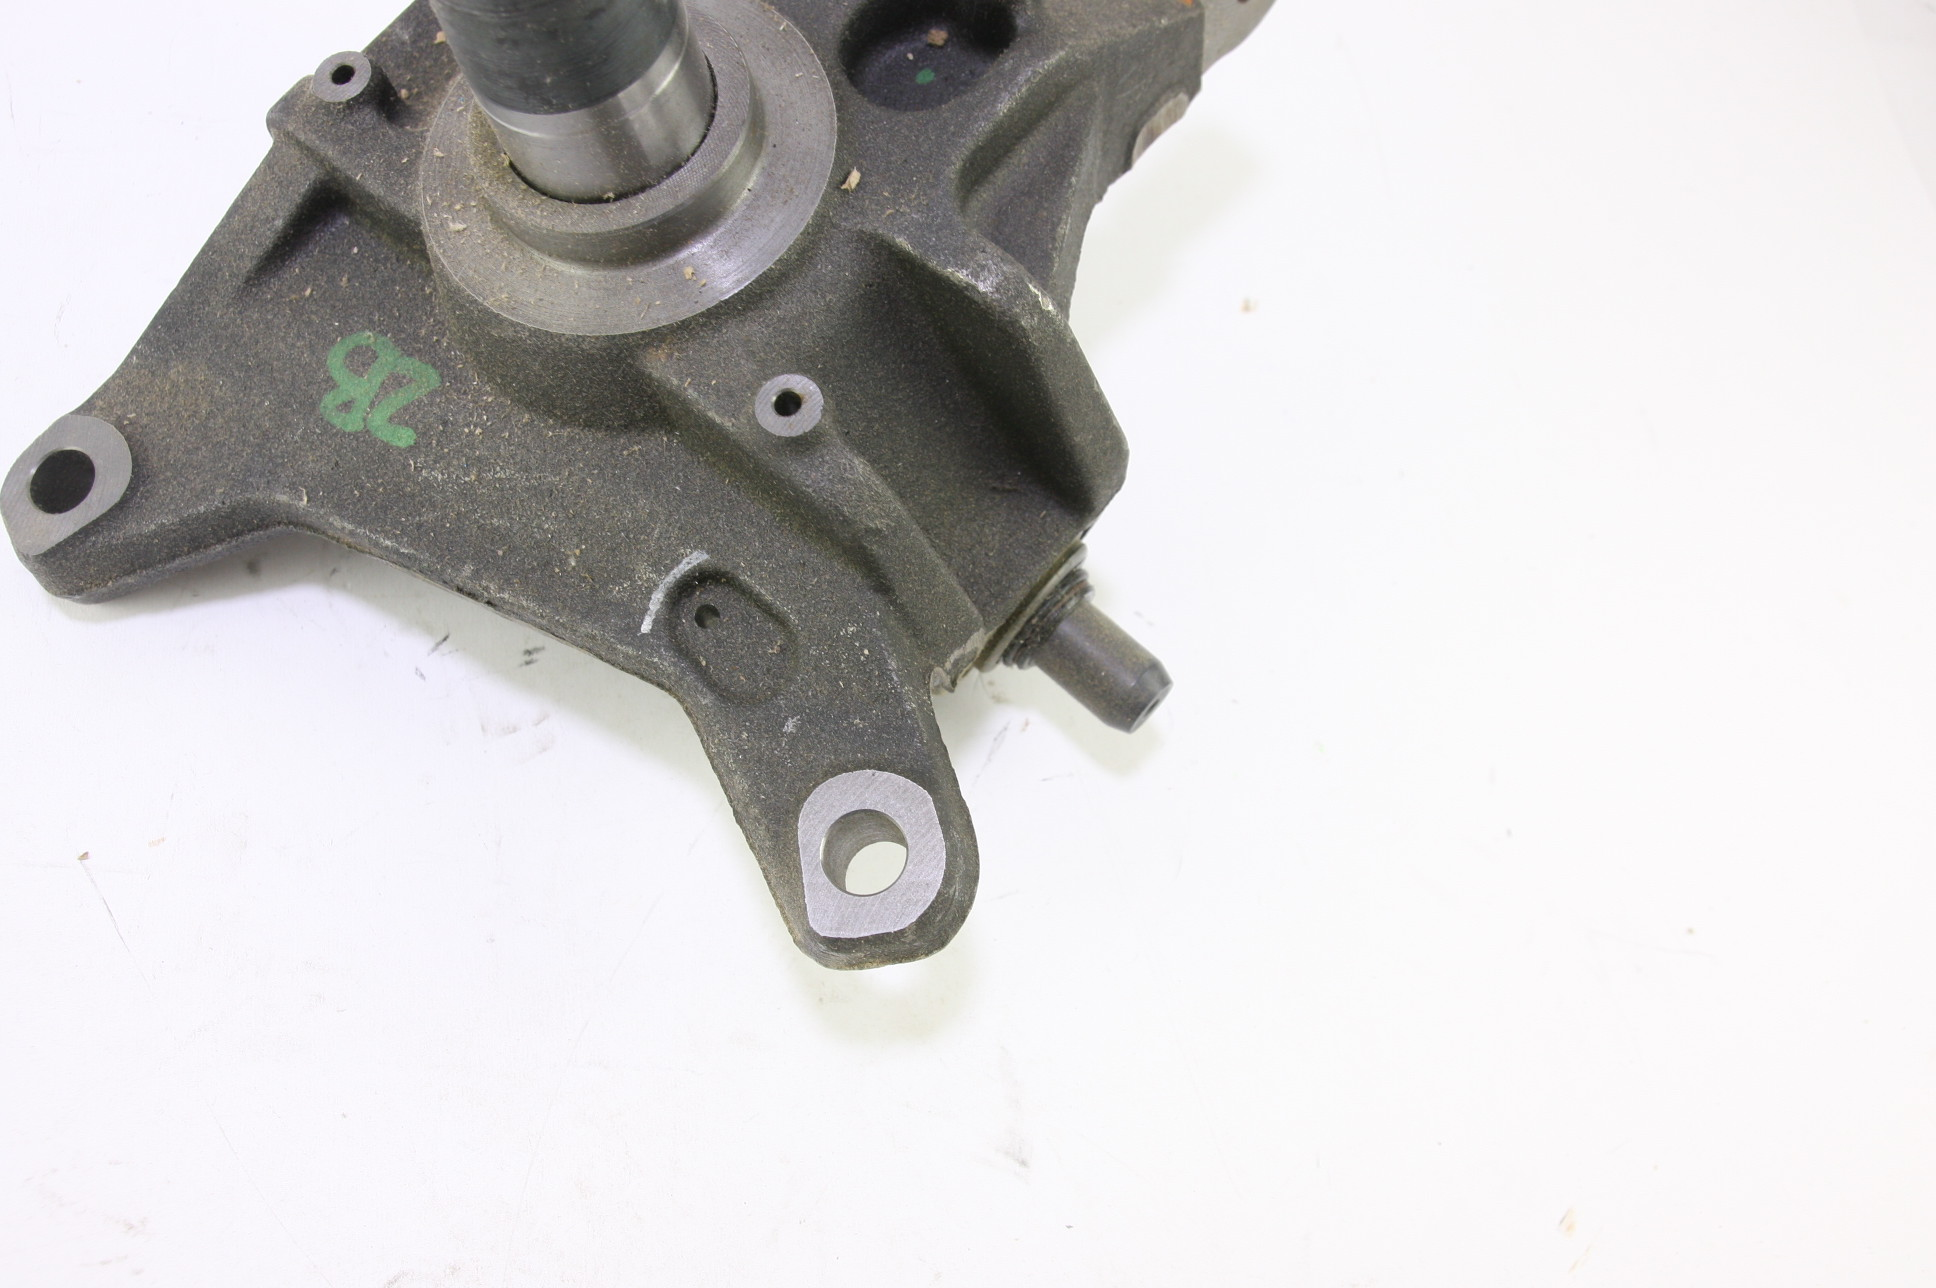 *New OEM 6C3Z3106B Ford 05-07 F-350 Super Duty Front Steering Knuckle Spindle - image 6